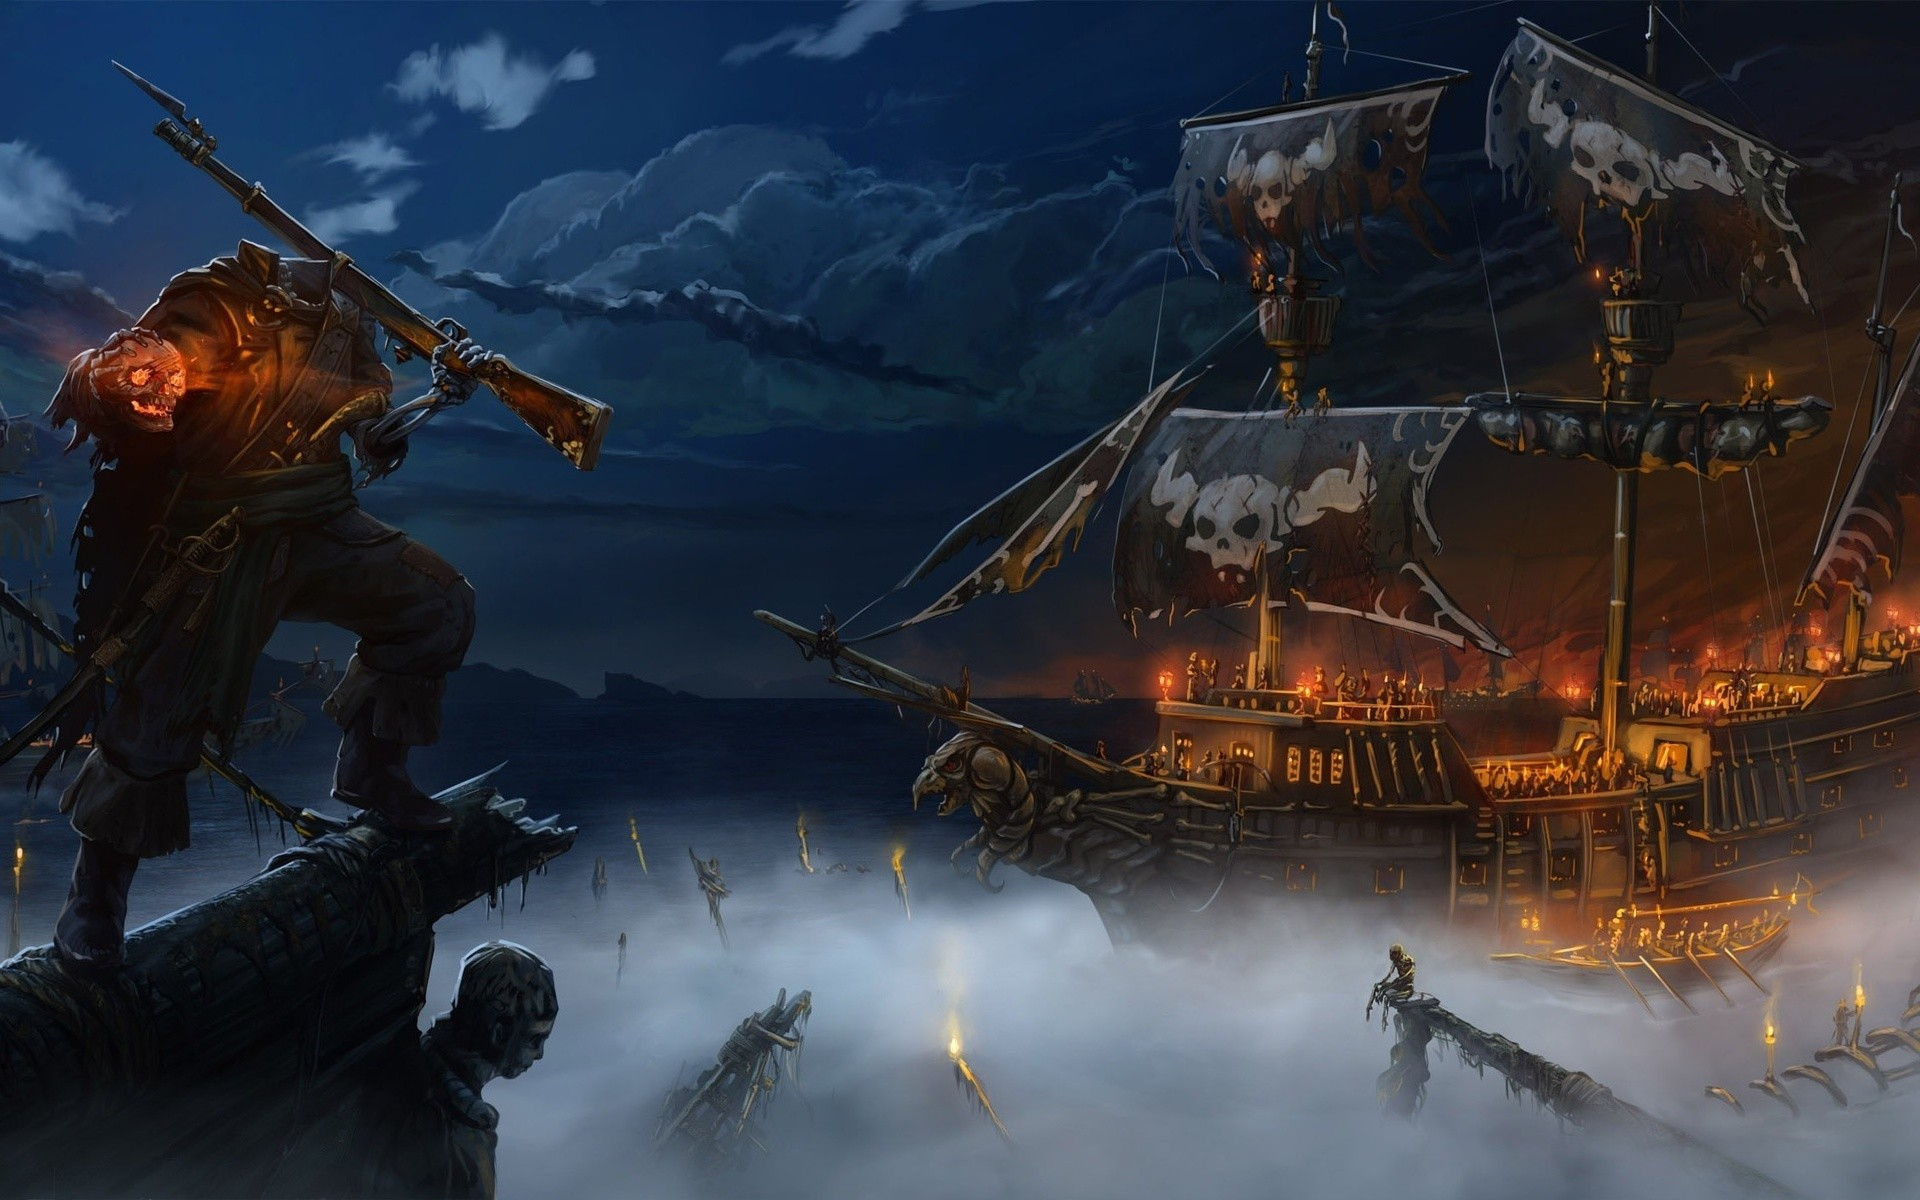 1920x1200 tablet backgrounds, spooky, horror, fire,fantasy, demon, skeleton, pirate ·  ships ...